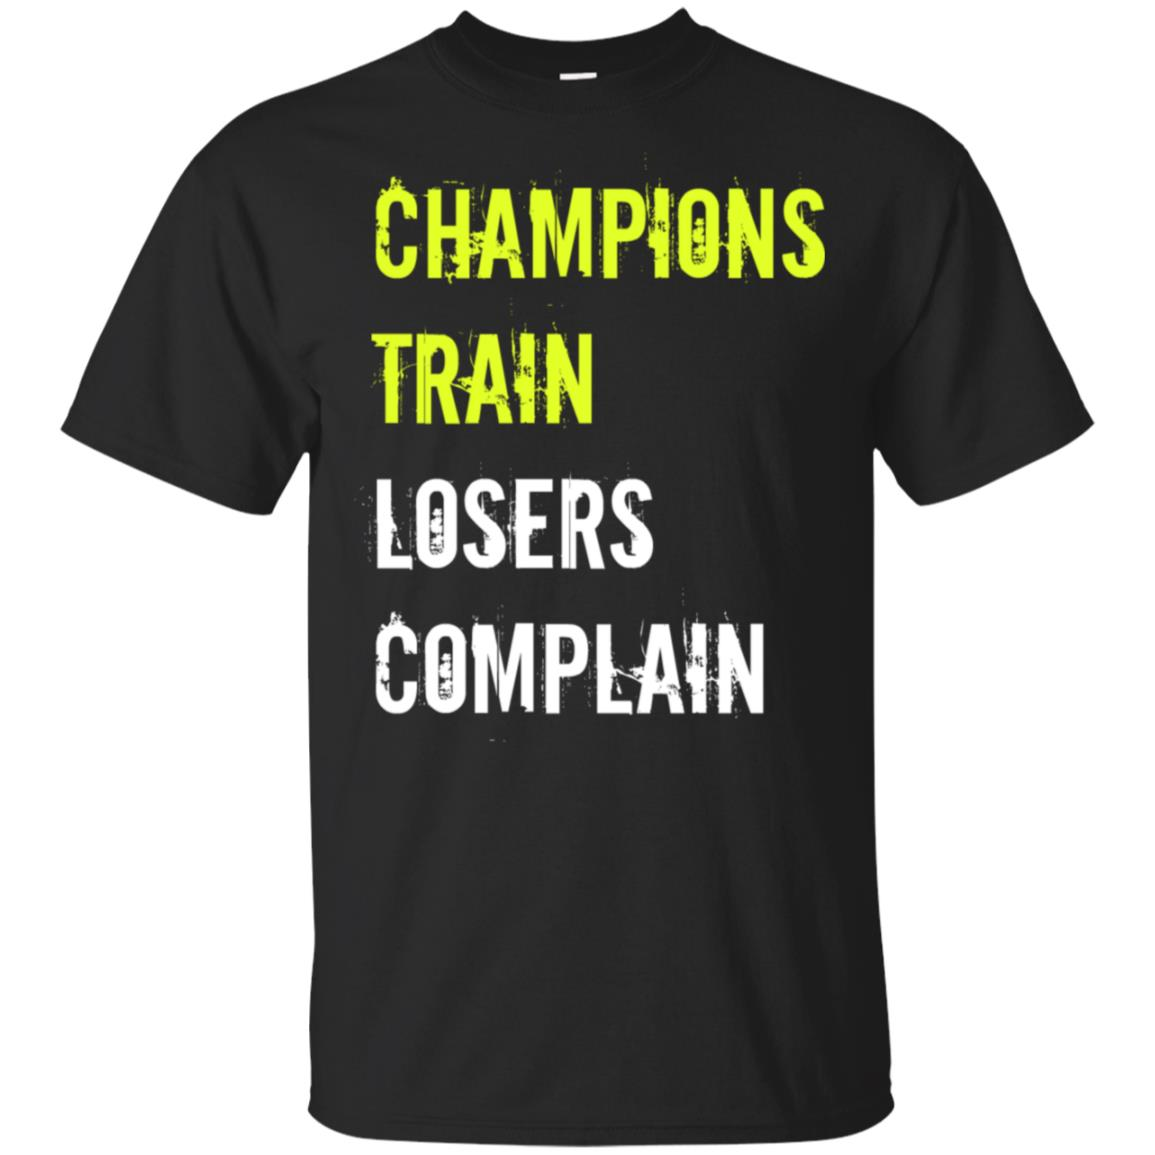 Champions Train Losers Complain gym training athlete Unisex Short Sleeve